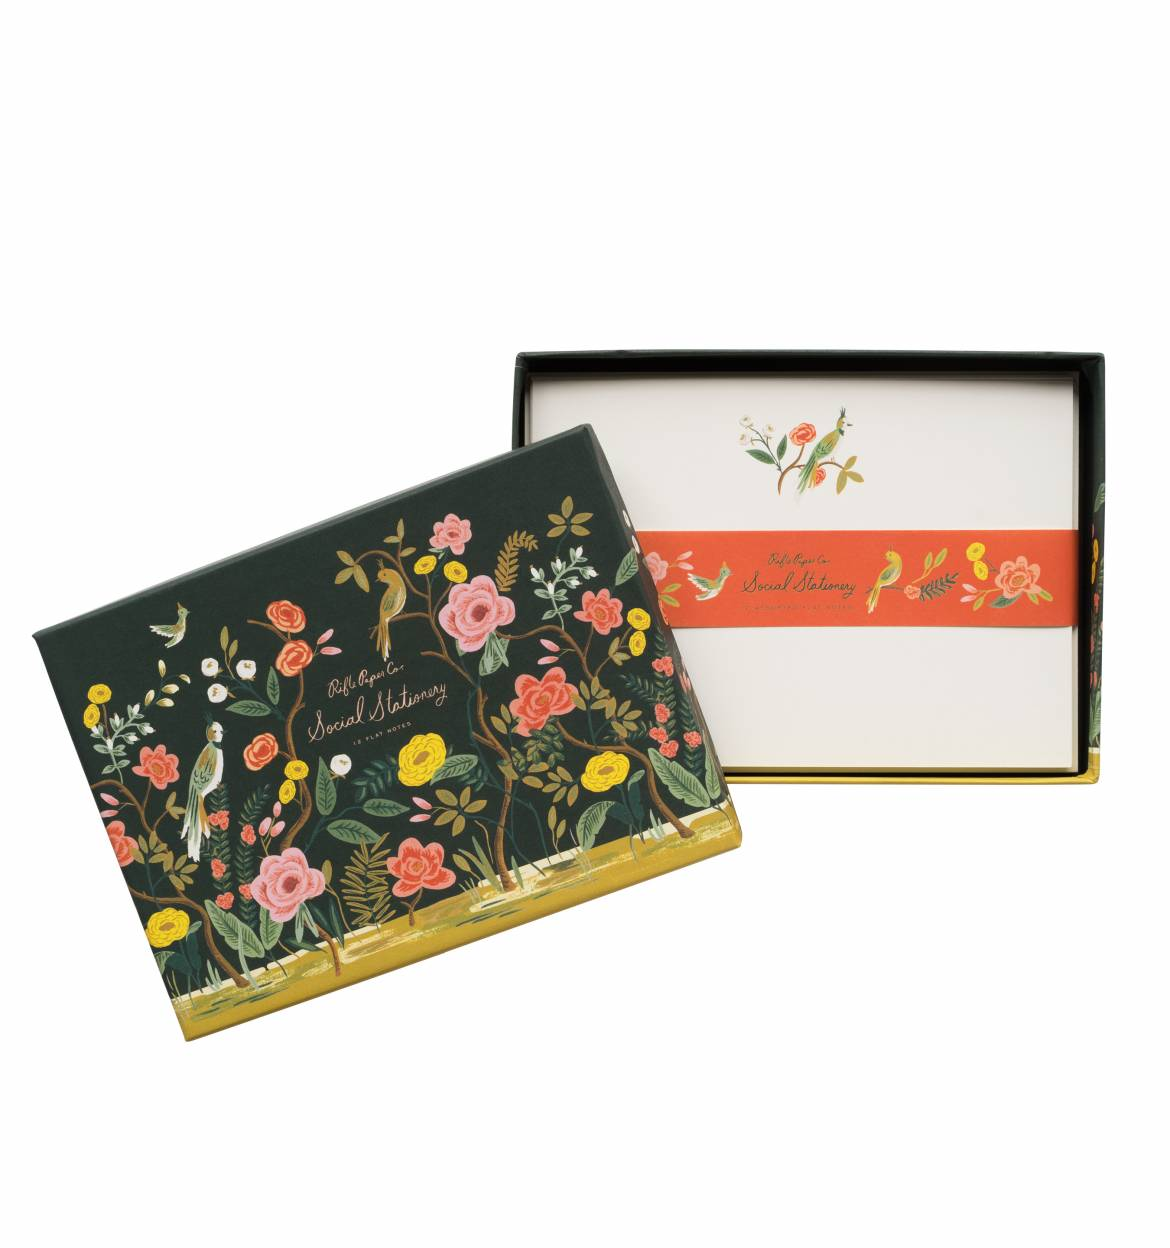 SHANGHAI GARDEN SOCIAL STATIONARY SET